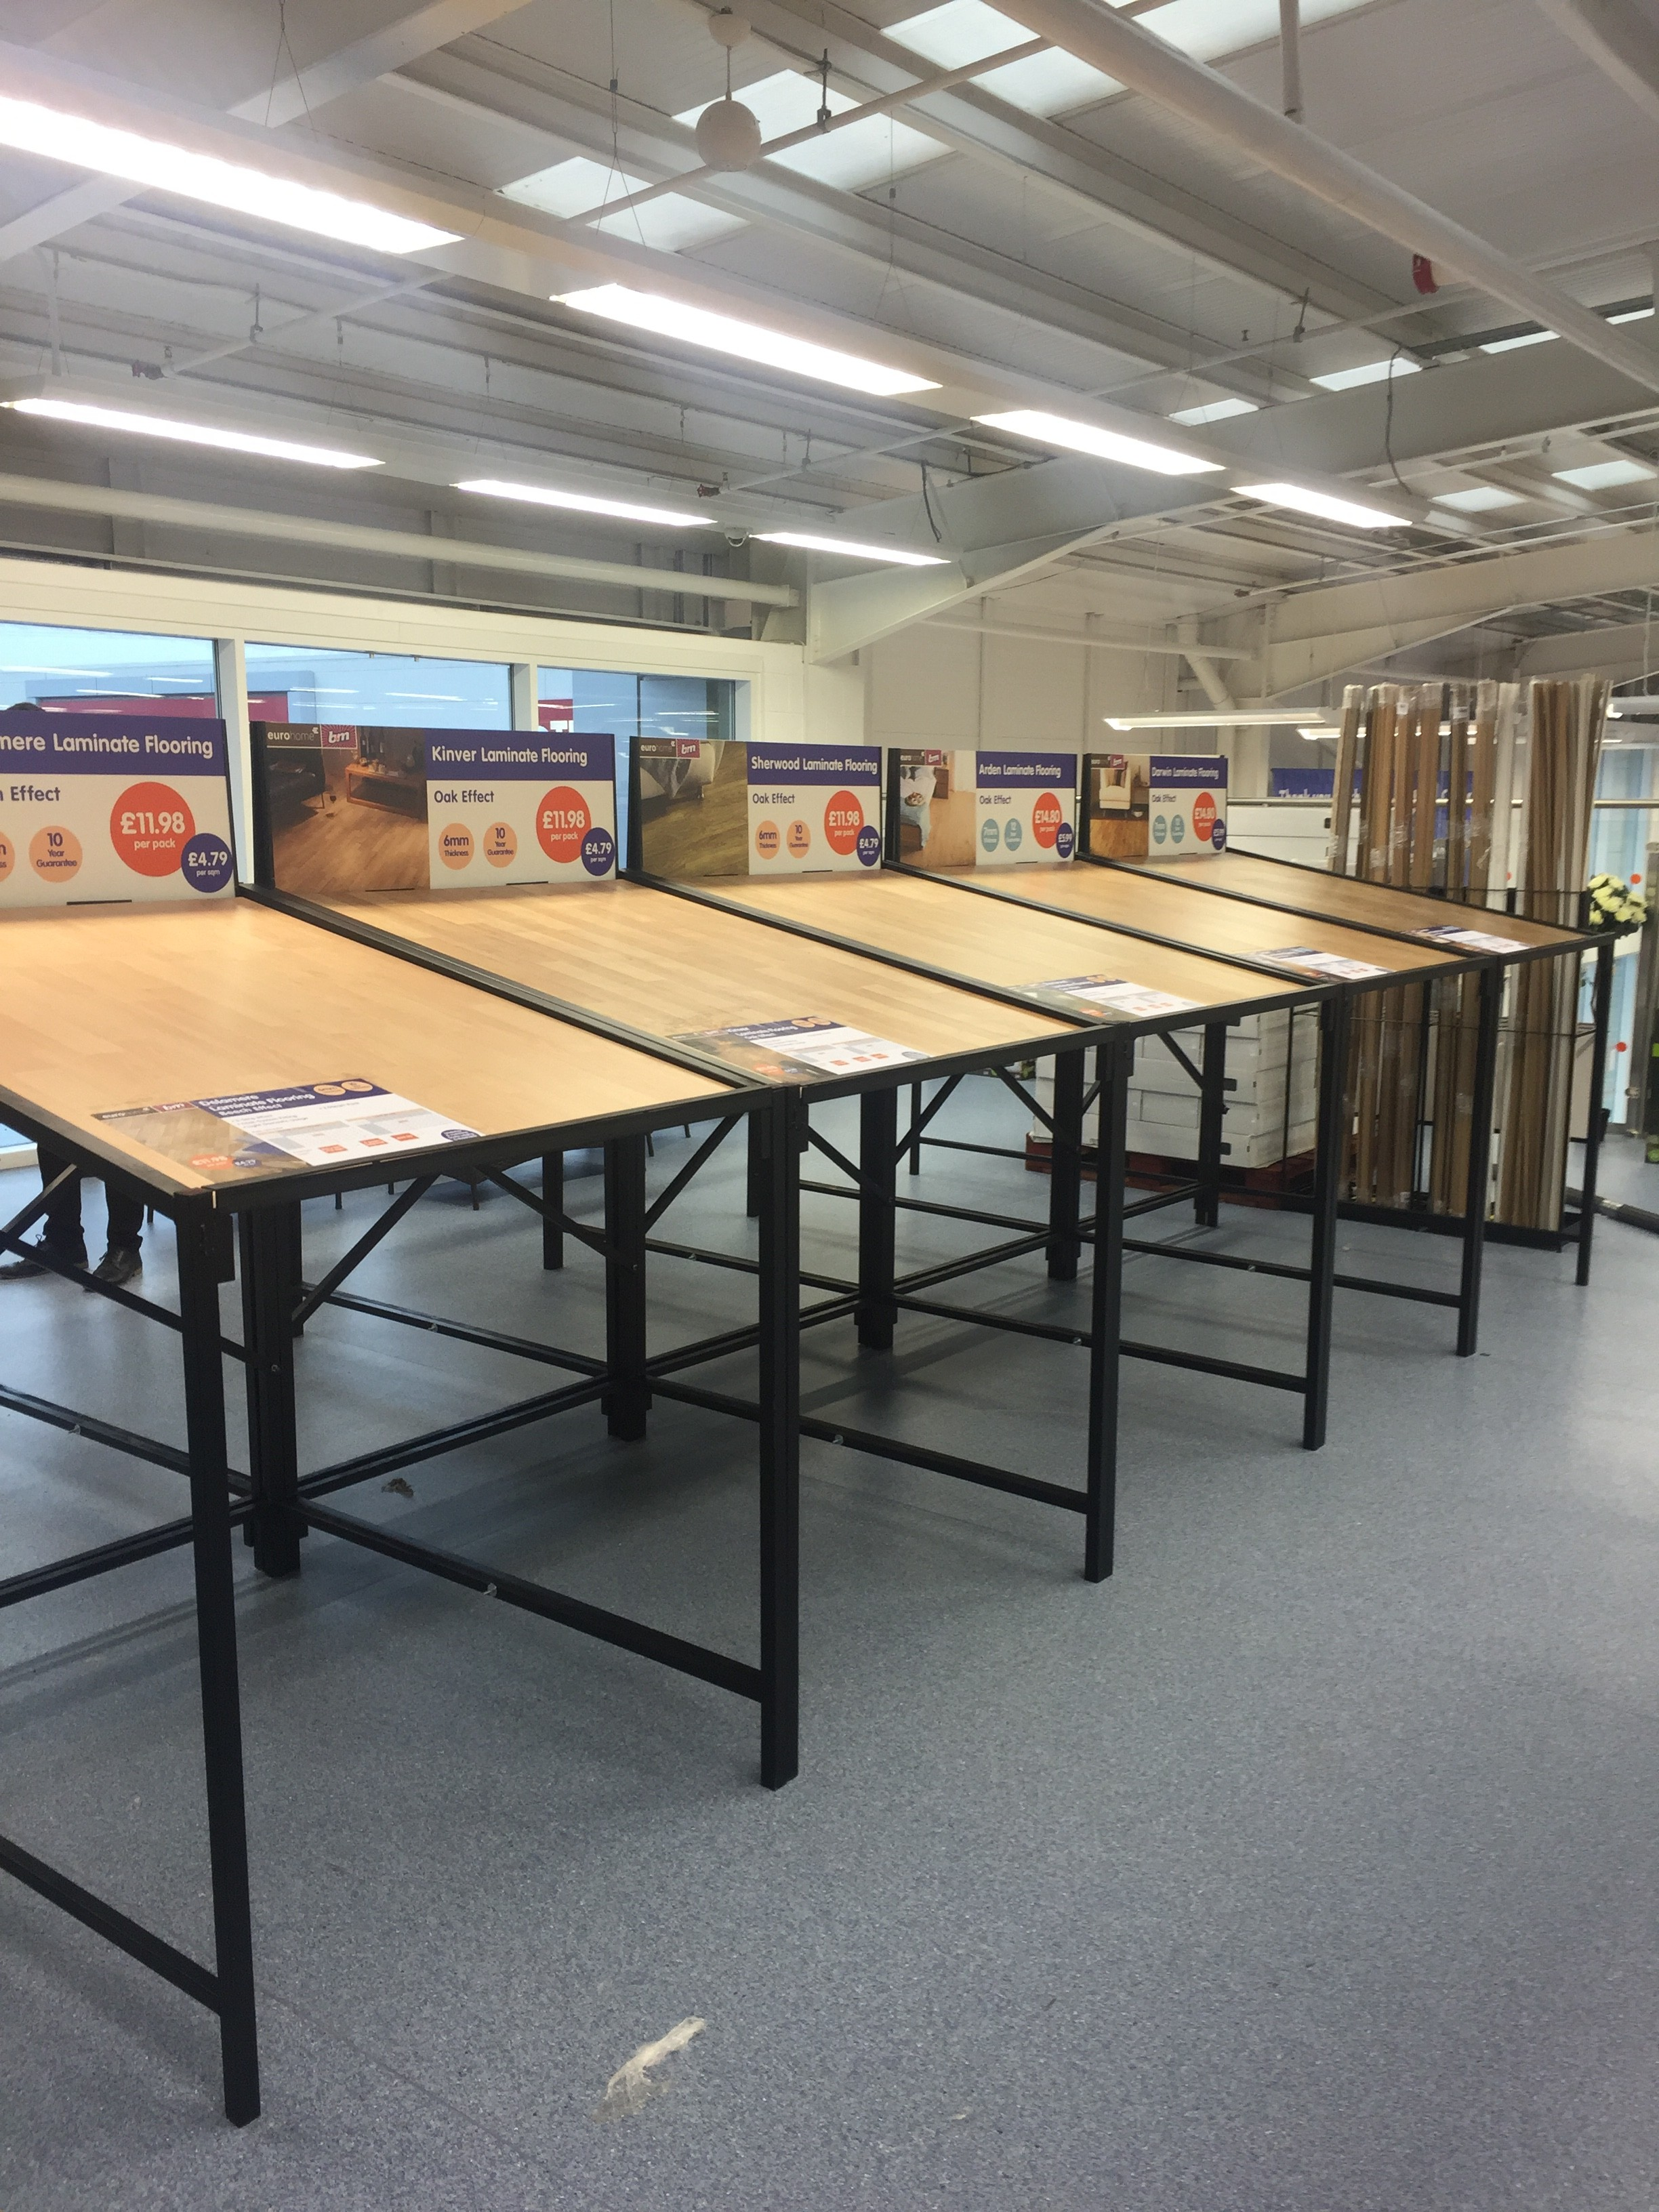 Laminate table b and m 3 uk display stands for Laminate flooring displays